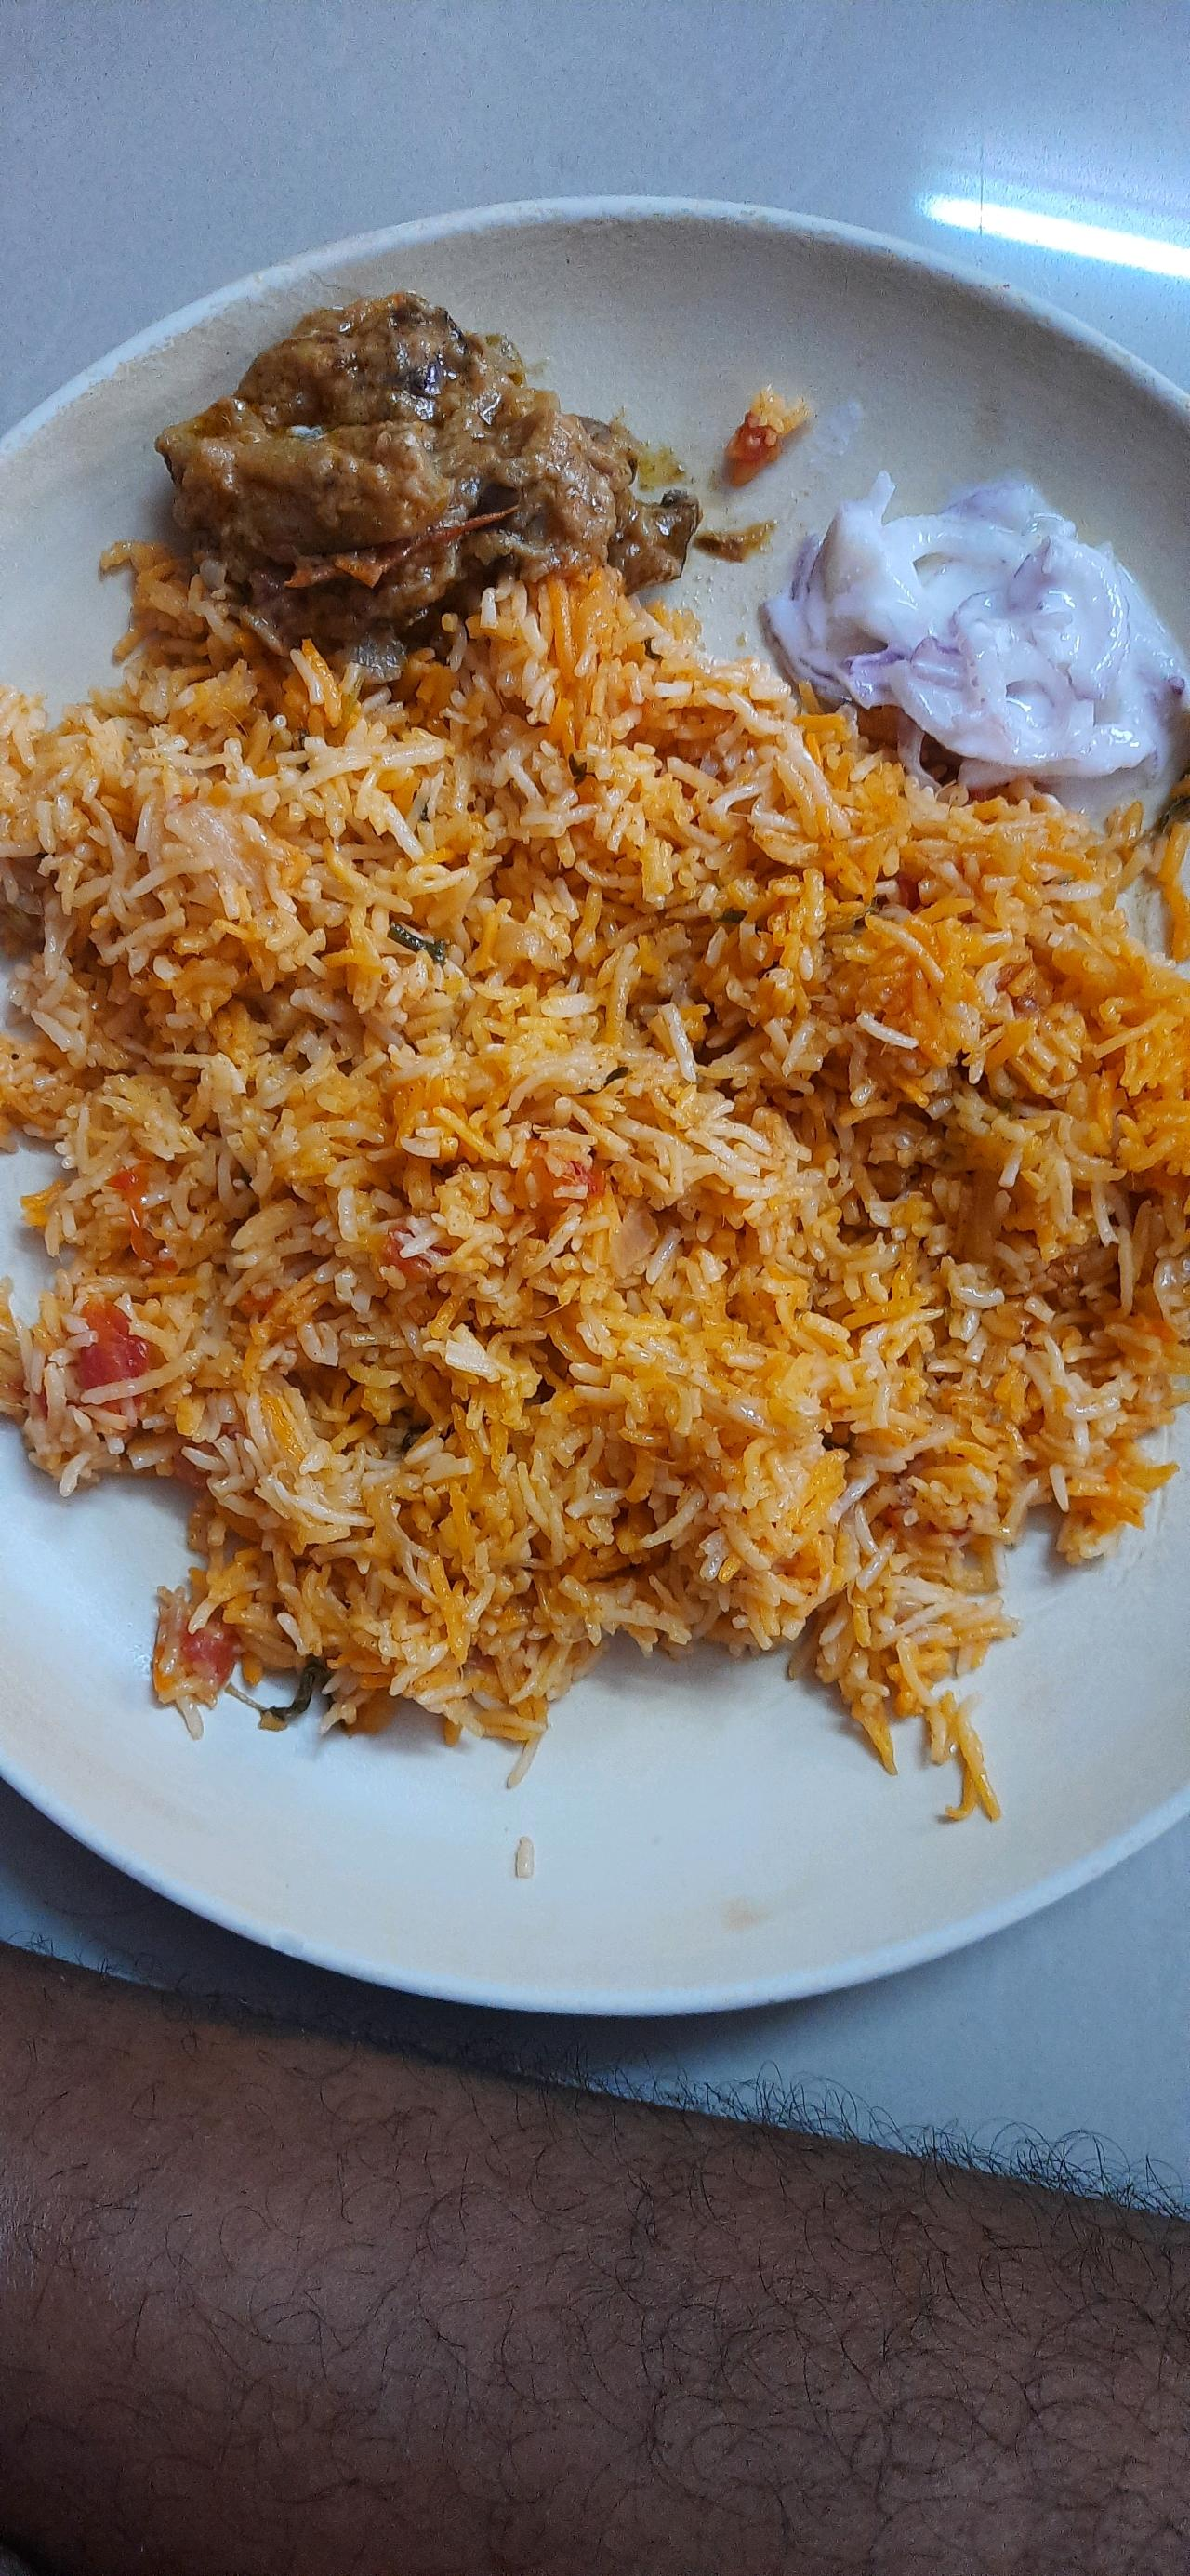 Hyderabad Dum Chicken Briyaani my First try 🥰🥰🥰 It comes well and tasty  #india_food_lovers #tamilnadu_food_lovers #chennai_food_lovers #briyaani_lovers